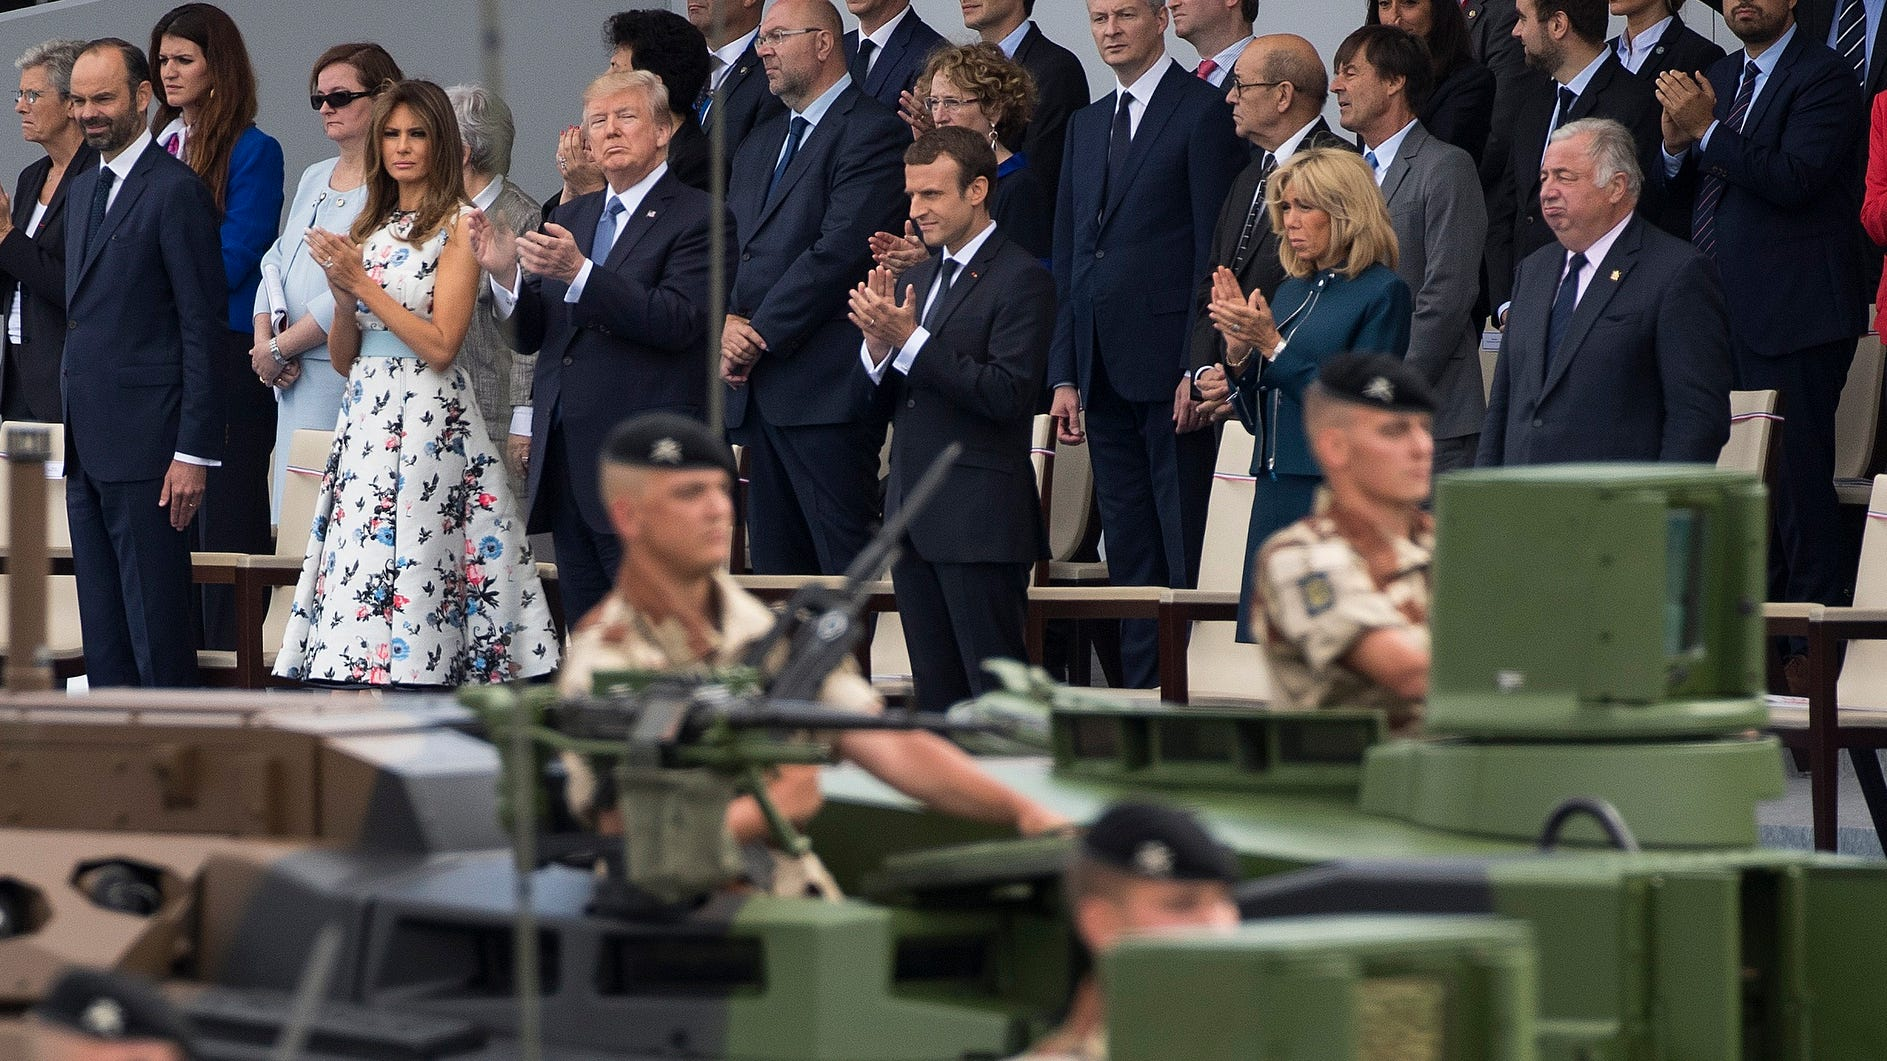 Tanks parade past President Donald Trump, first lady Melania Trump, French President Emmanuel Macron and his wife Brigitte Macron, during Bastille Day parade on the Champs Elysees avenue in Paris,  July 14, 2017.